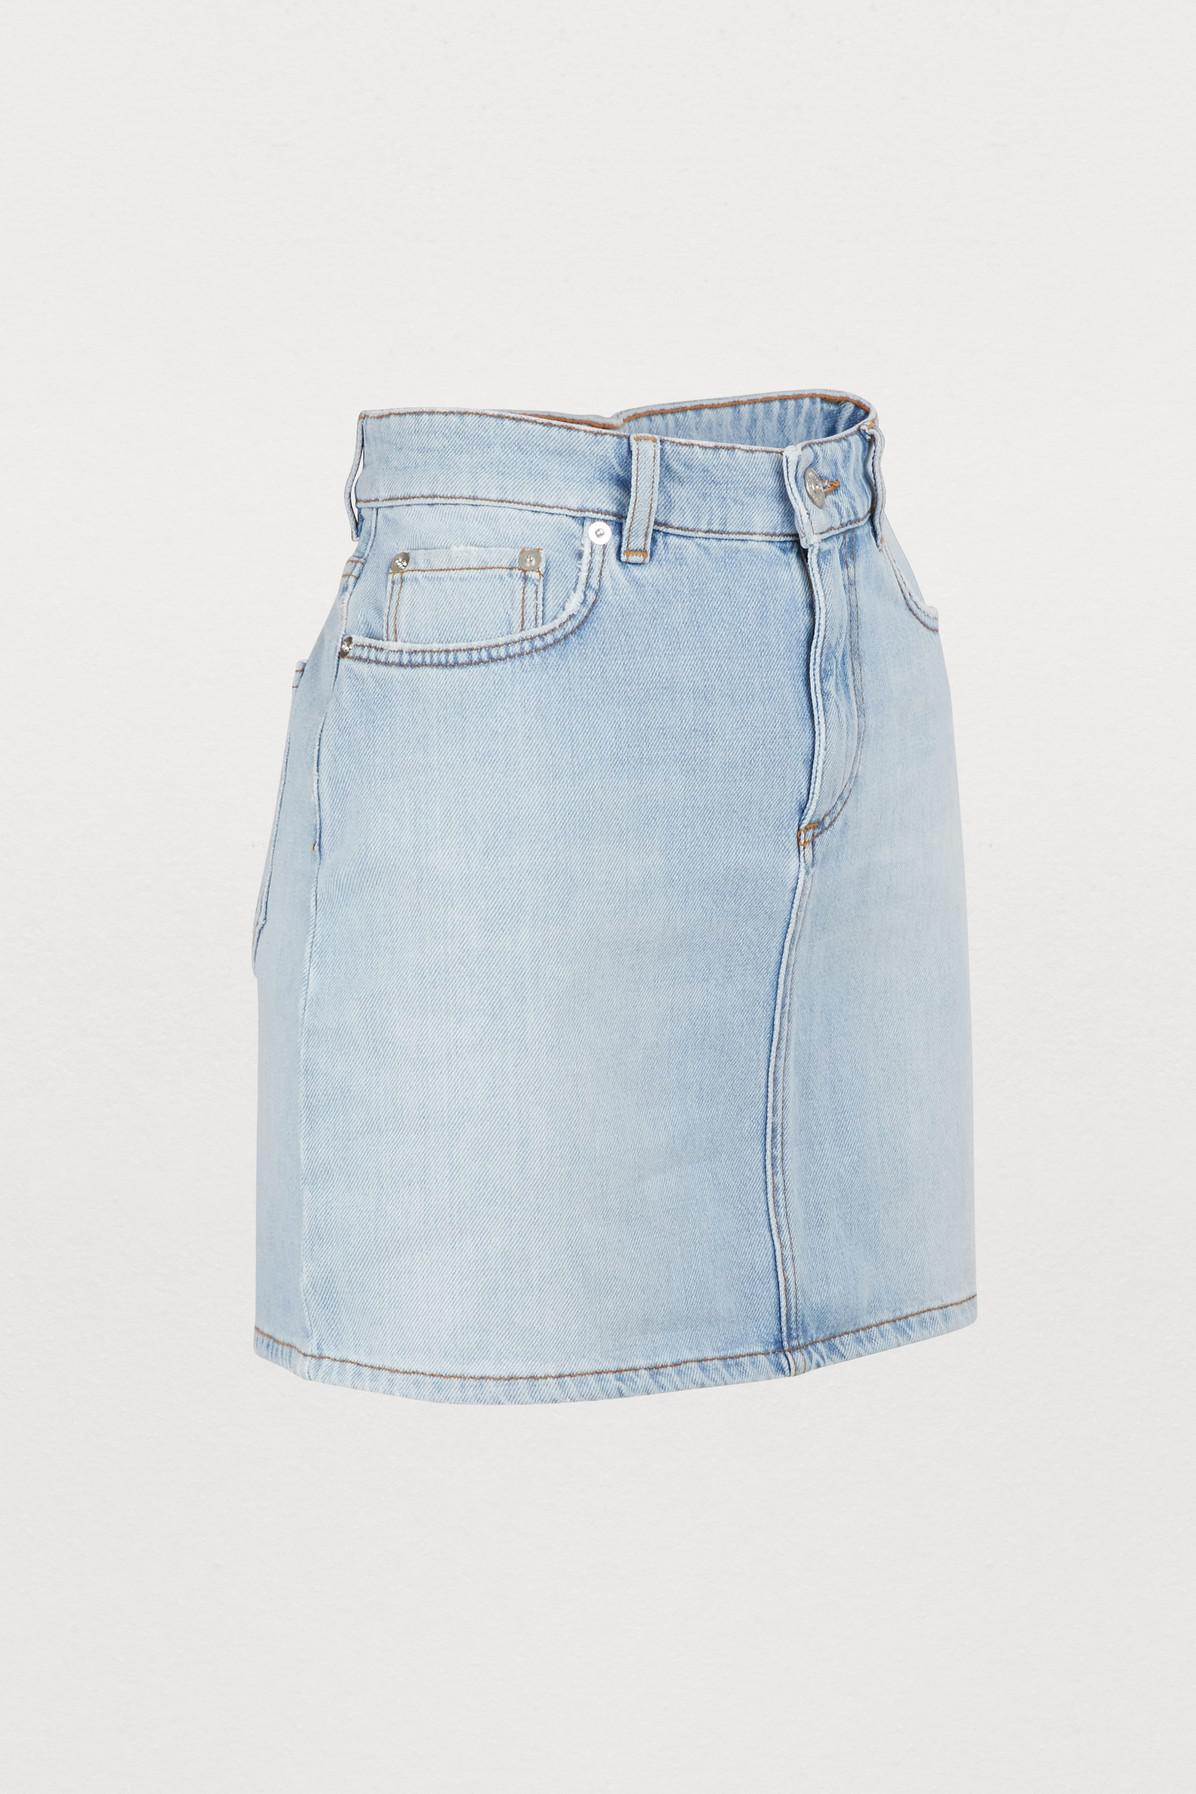 3a6c0c25 Ganni - Blue Sheldon Denim Skirt - Lyst. View fullscreen